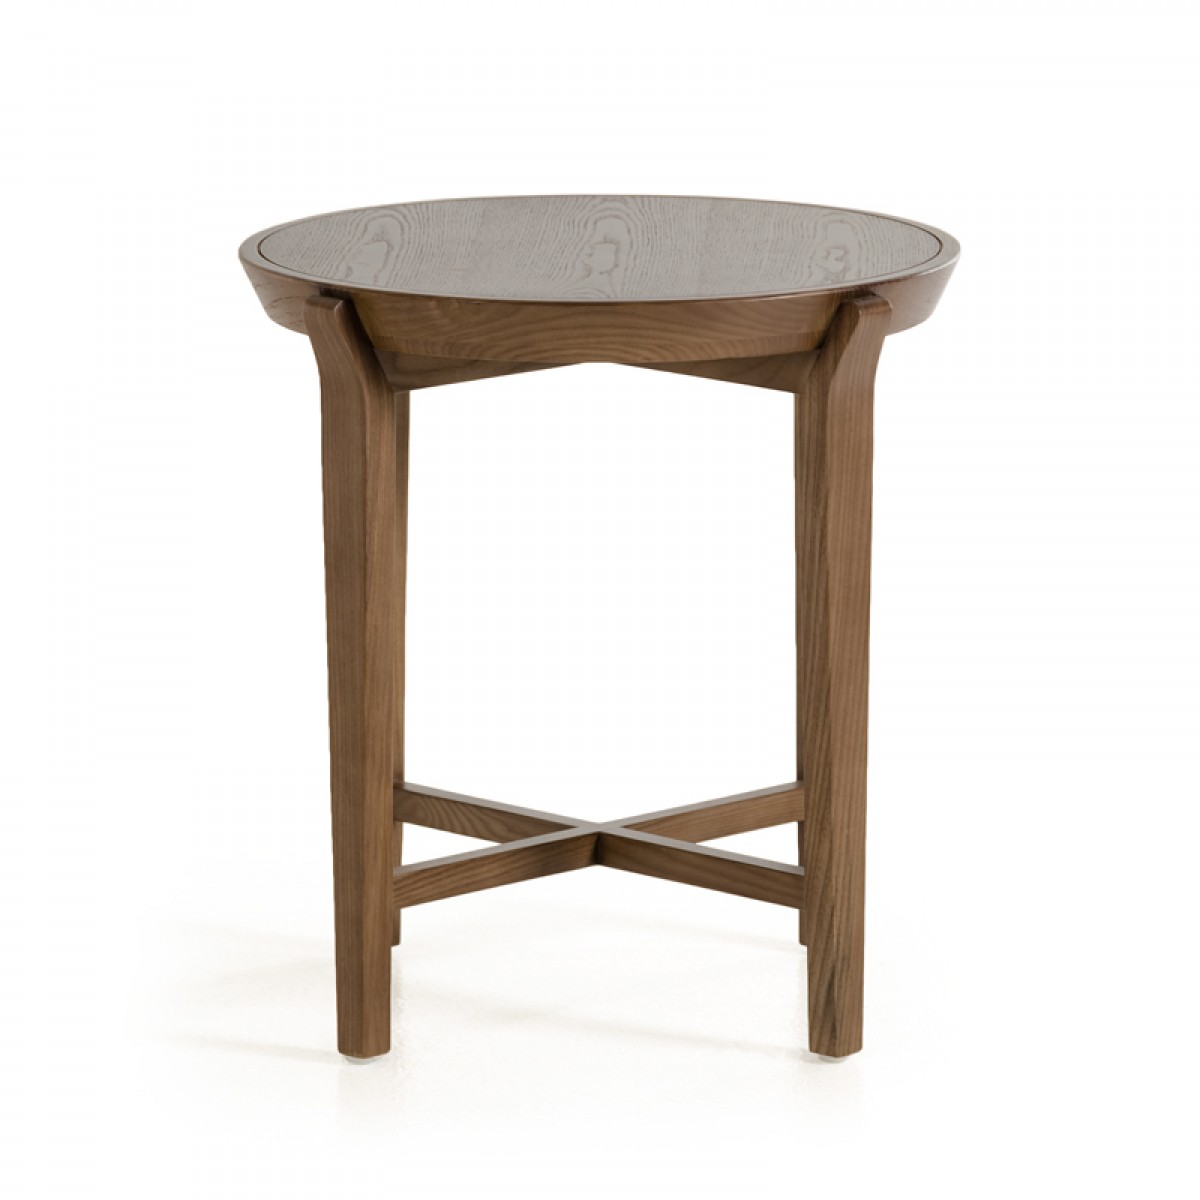 Modrest olenna modern walnut side table end tables Modern side table